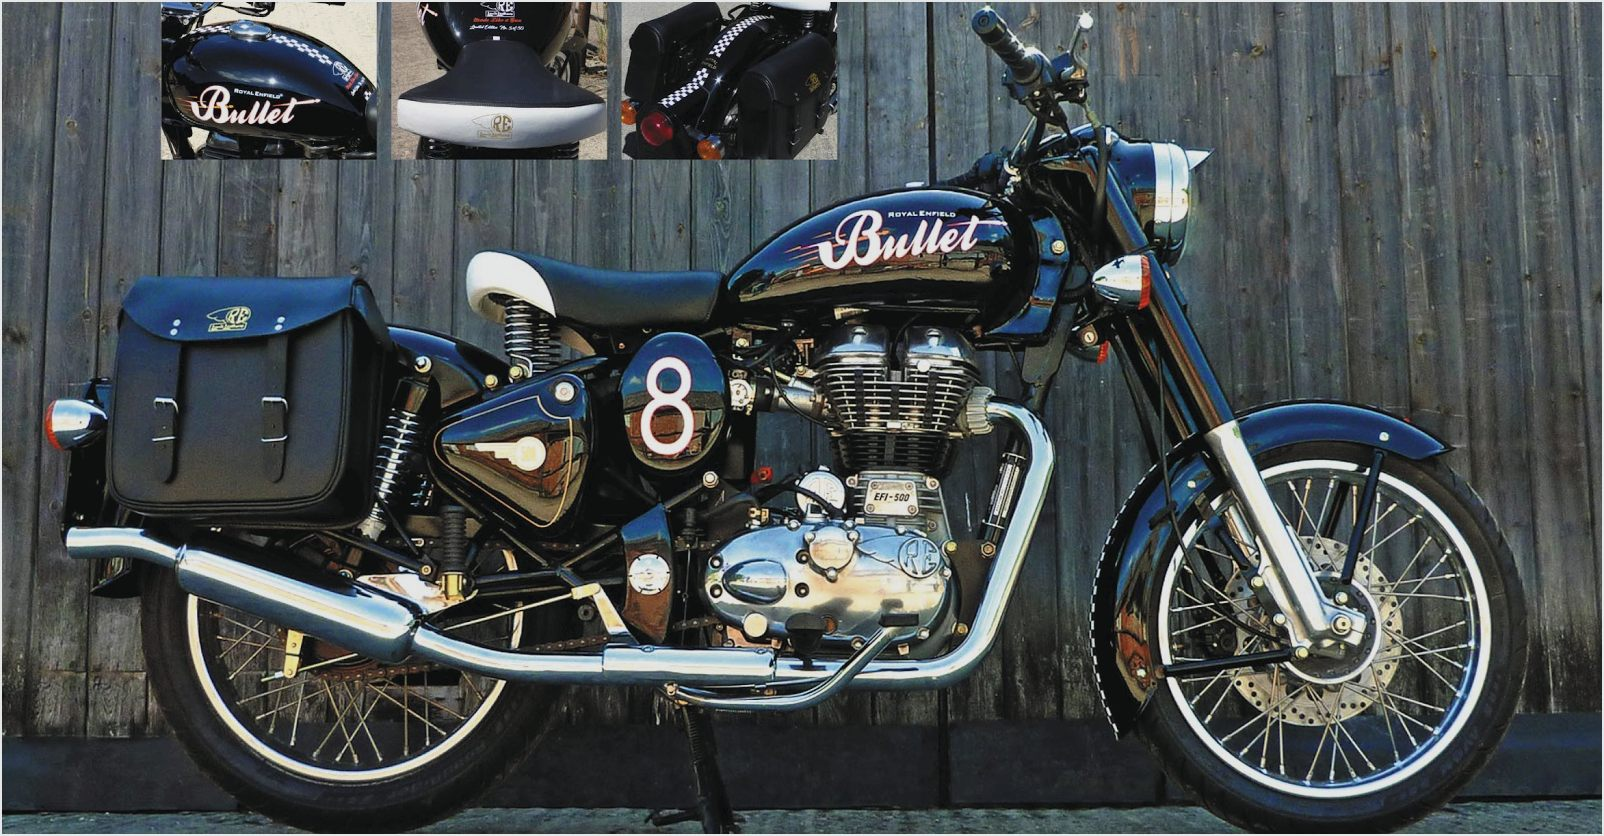 Enfield US Classic 500 #7